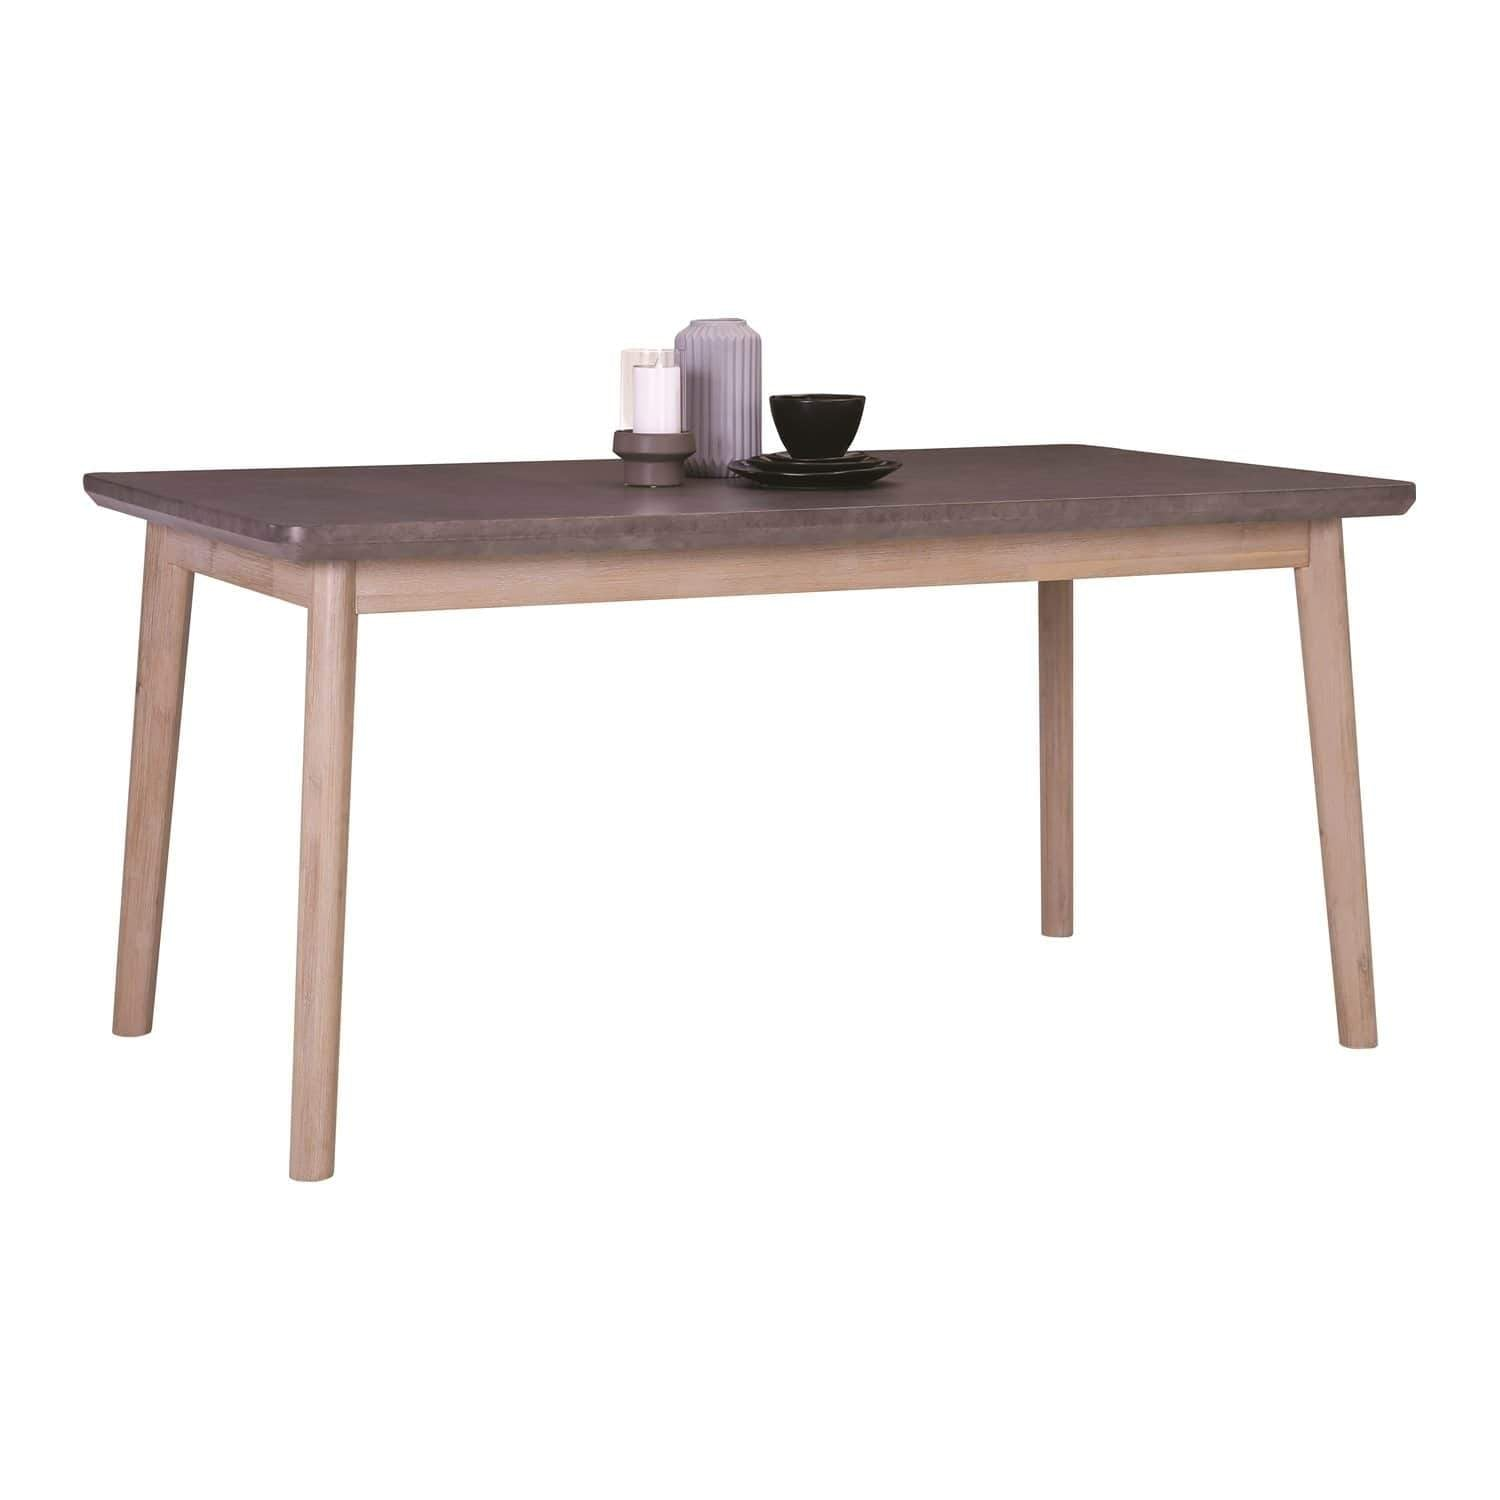 mfdesign88 CORBON 1.6M Dining Table In Havana Sandlast Grey Colour